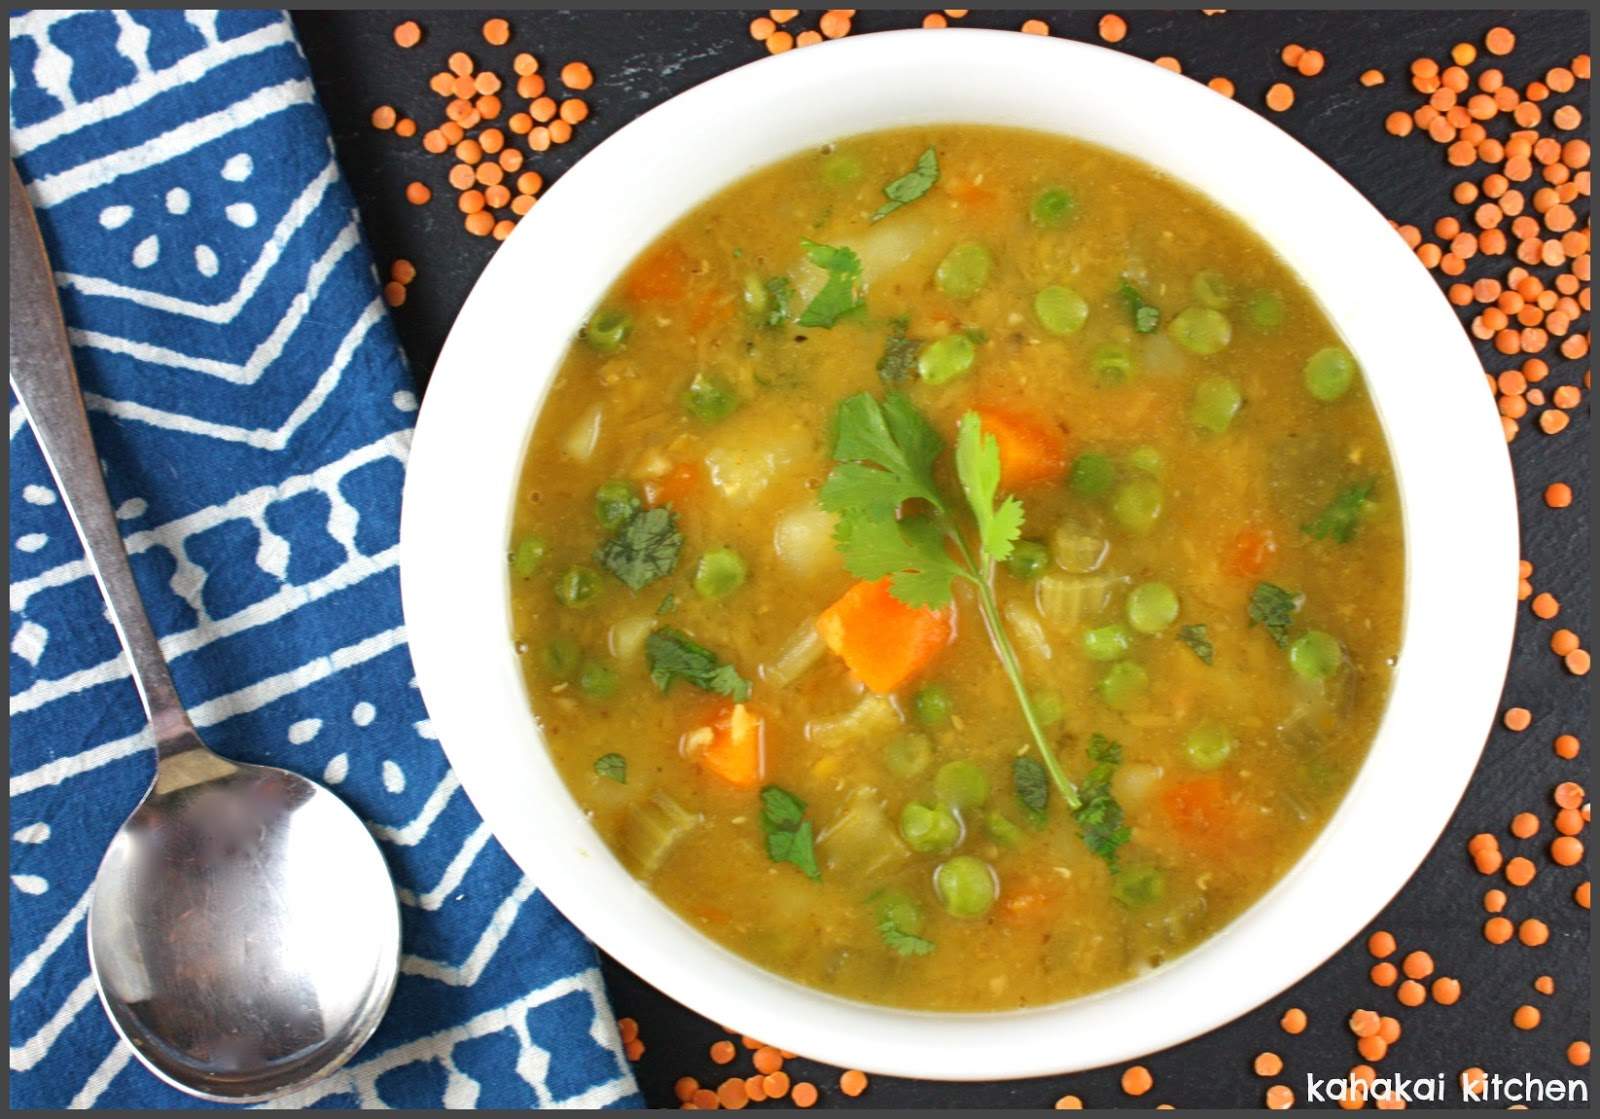 Kahakai Kitchen: Mulligatawny Soup Made Vegan for Souper (Soup, Salad ...